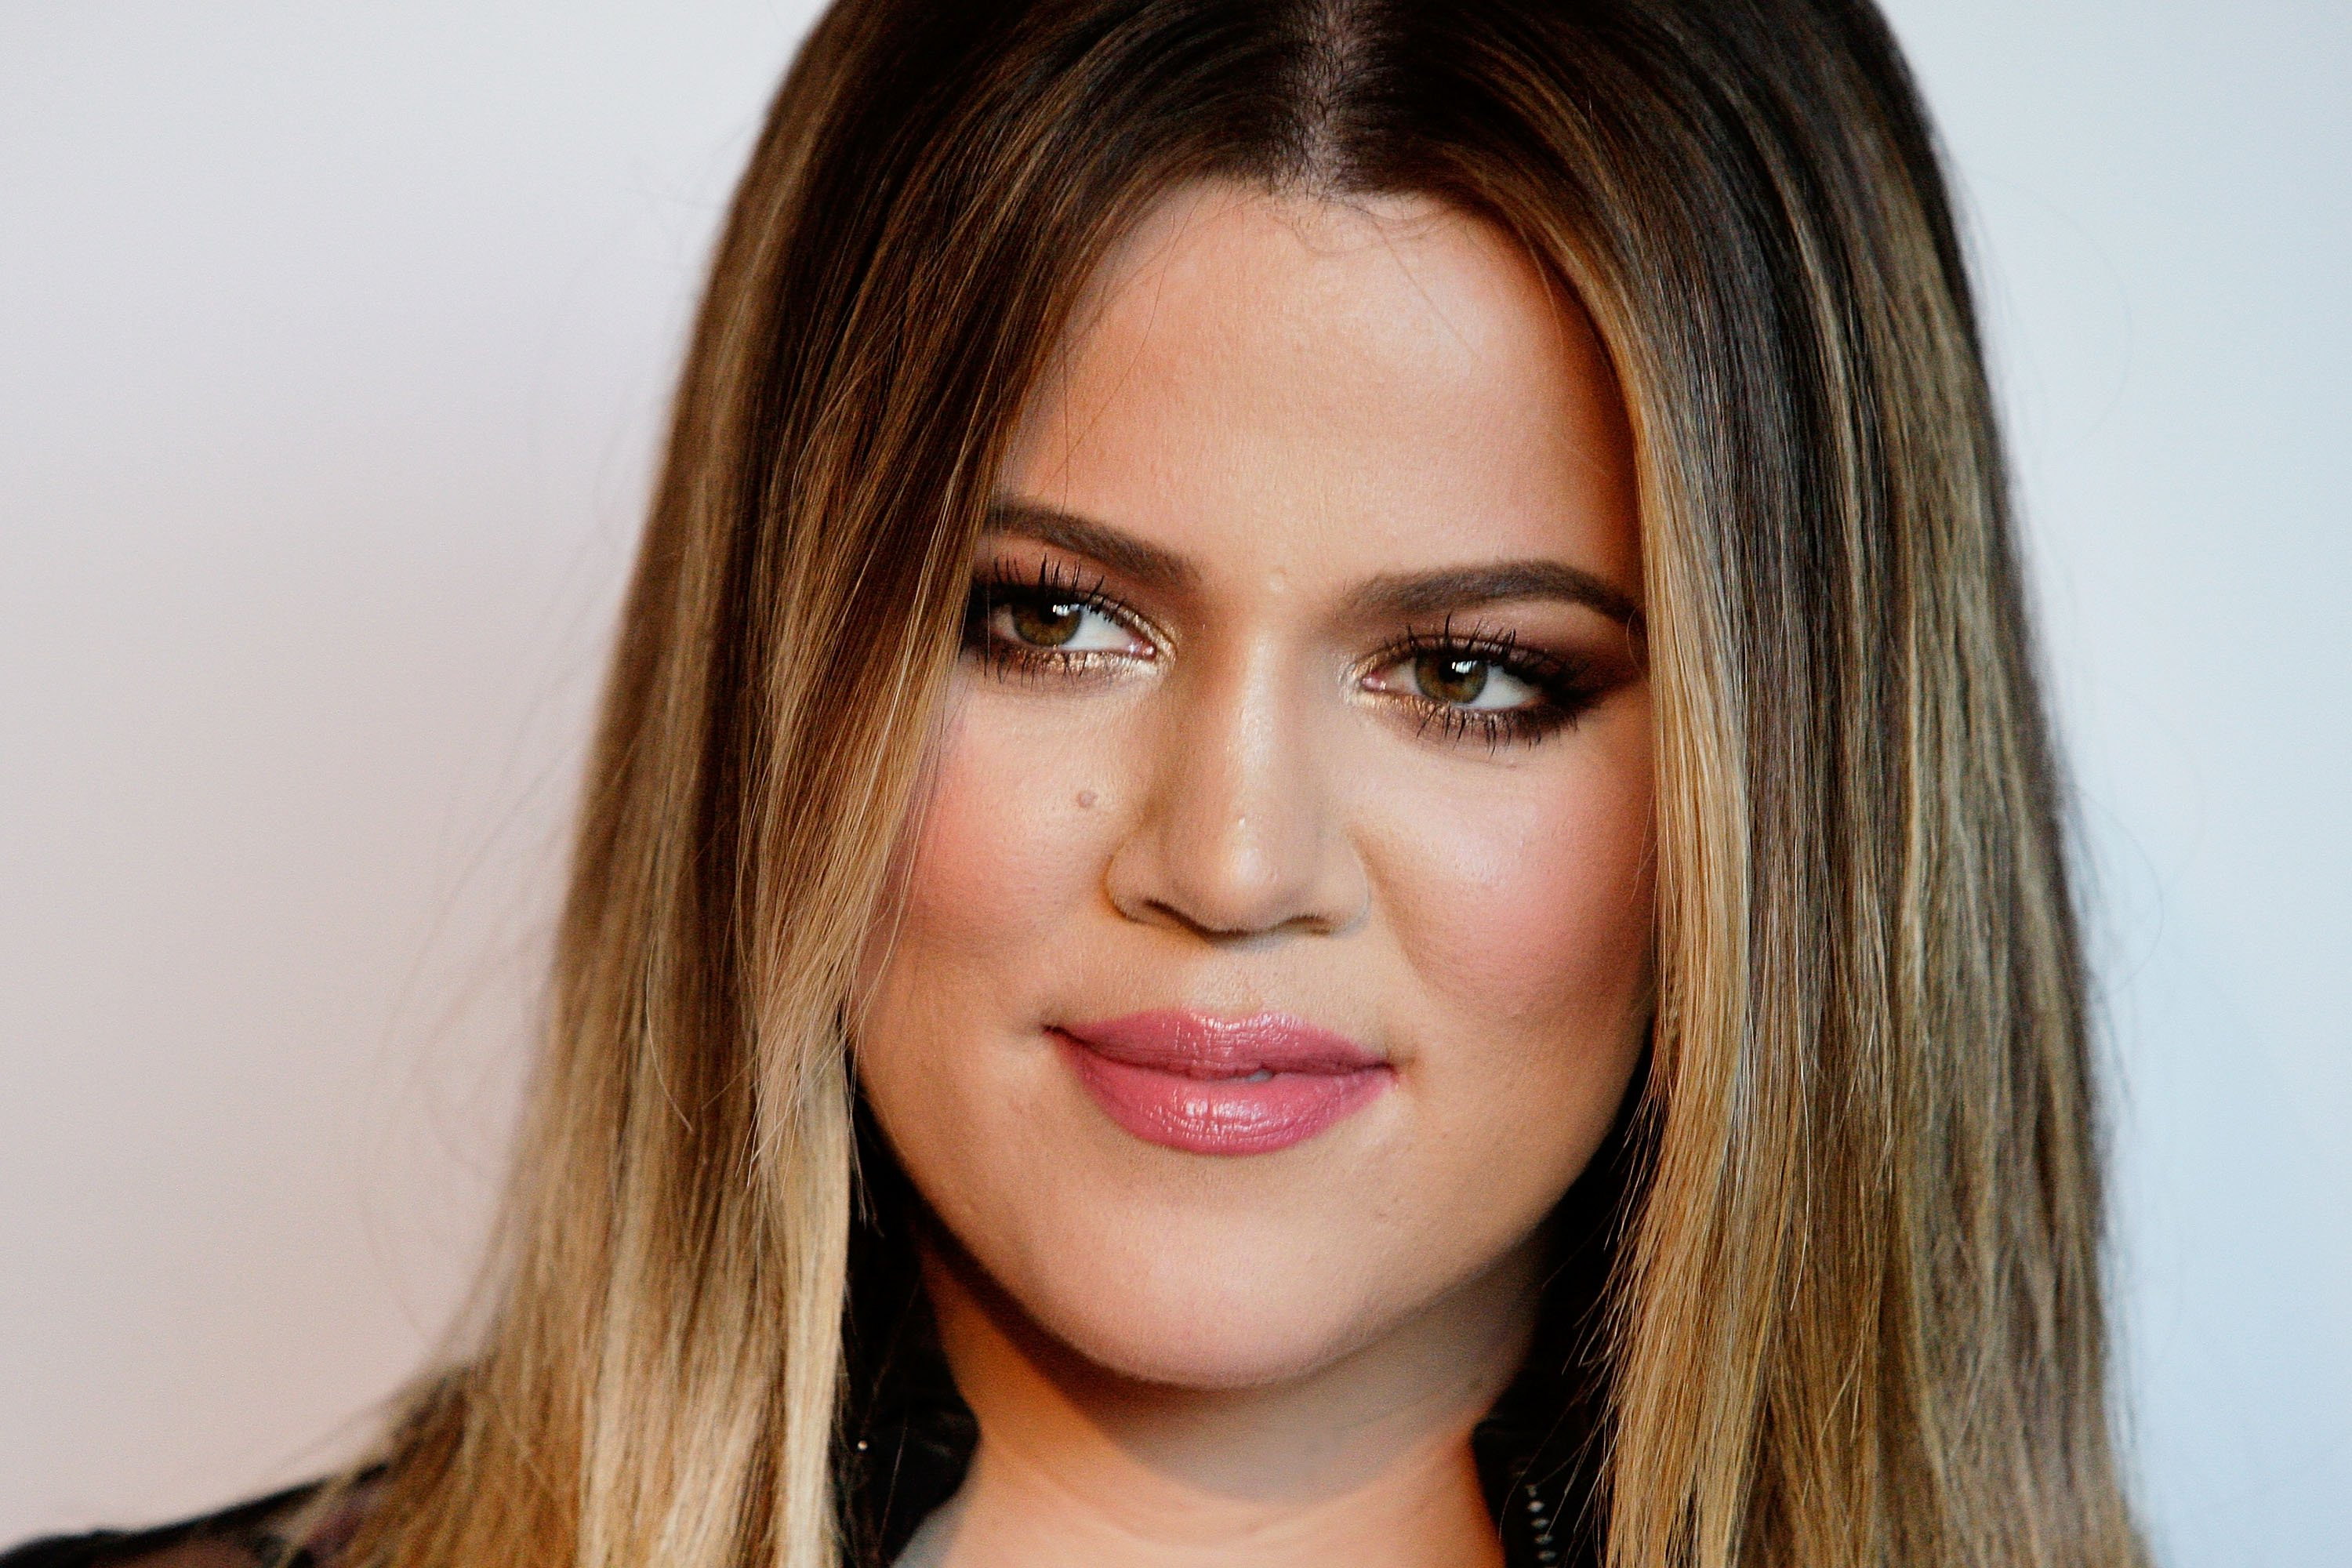 Khloe Kardashian during the Kardashian Kollection cocktail part. | Source: Getty Images